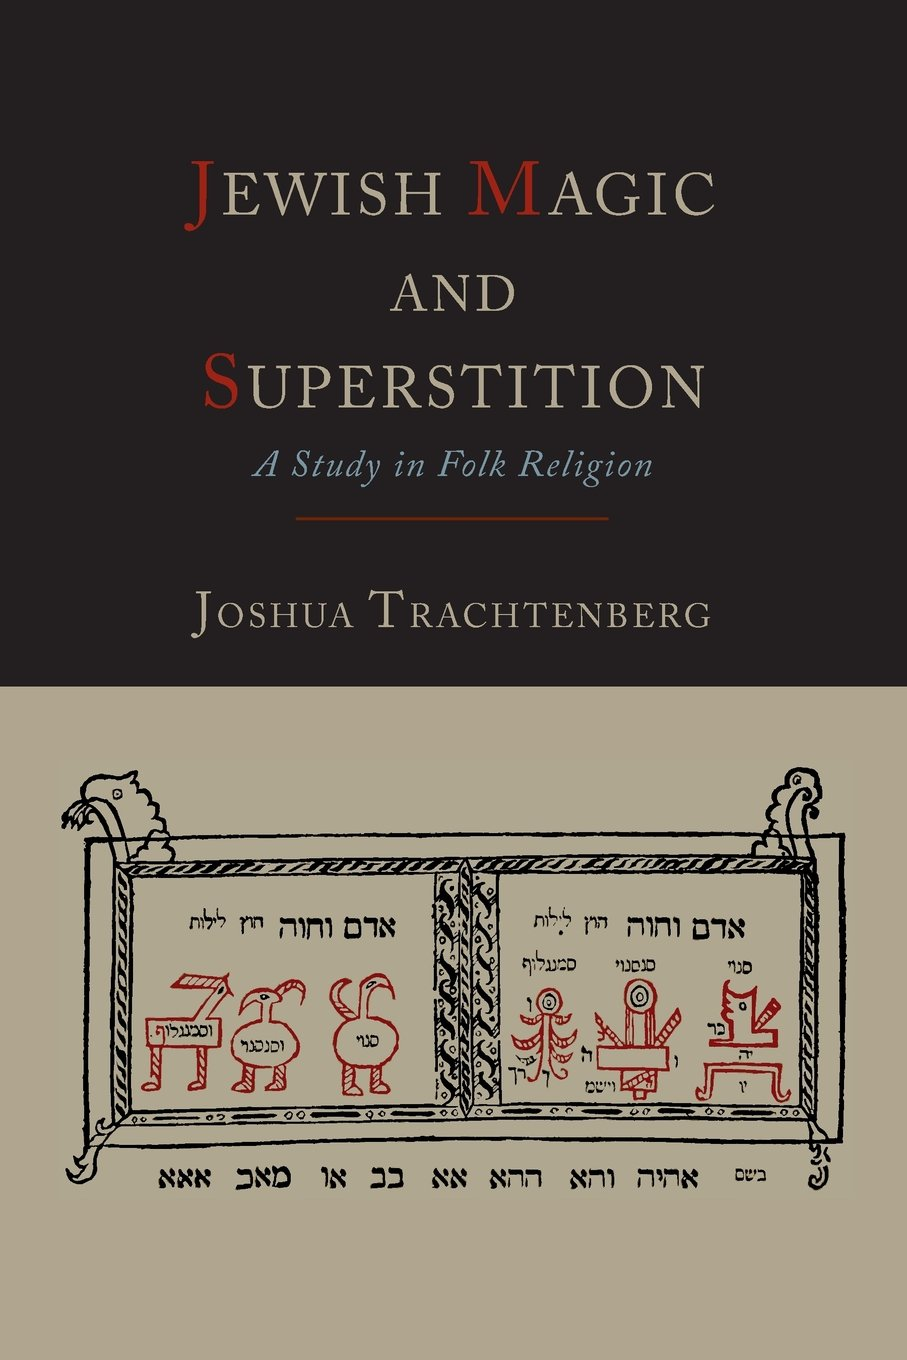 Jewish Magic and Superstition: A Study in Folk Religion PDF